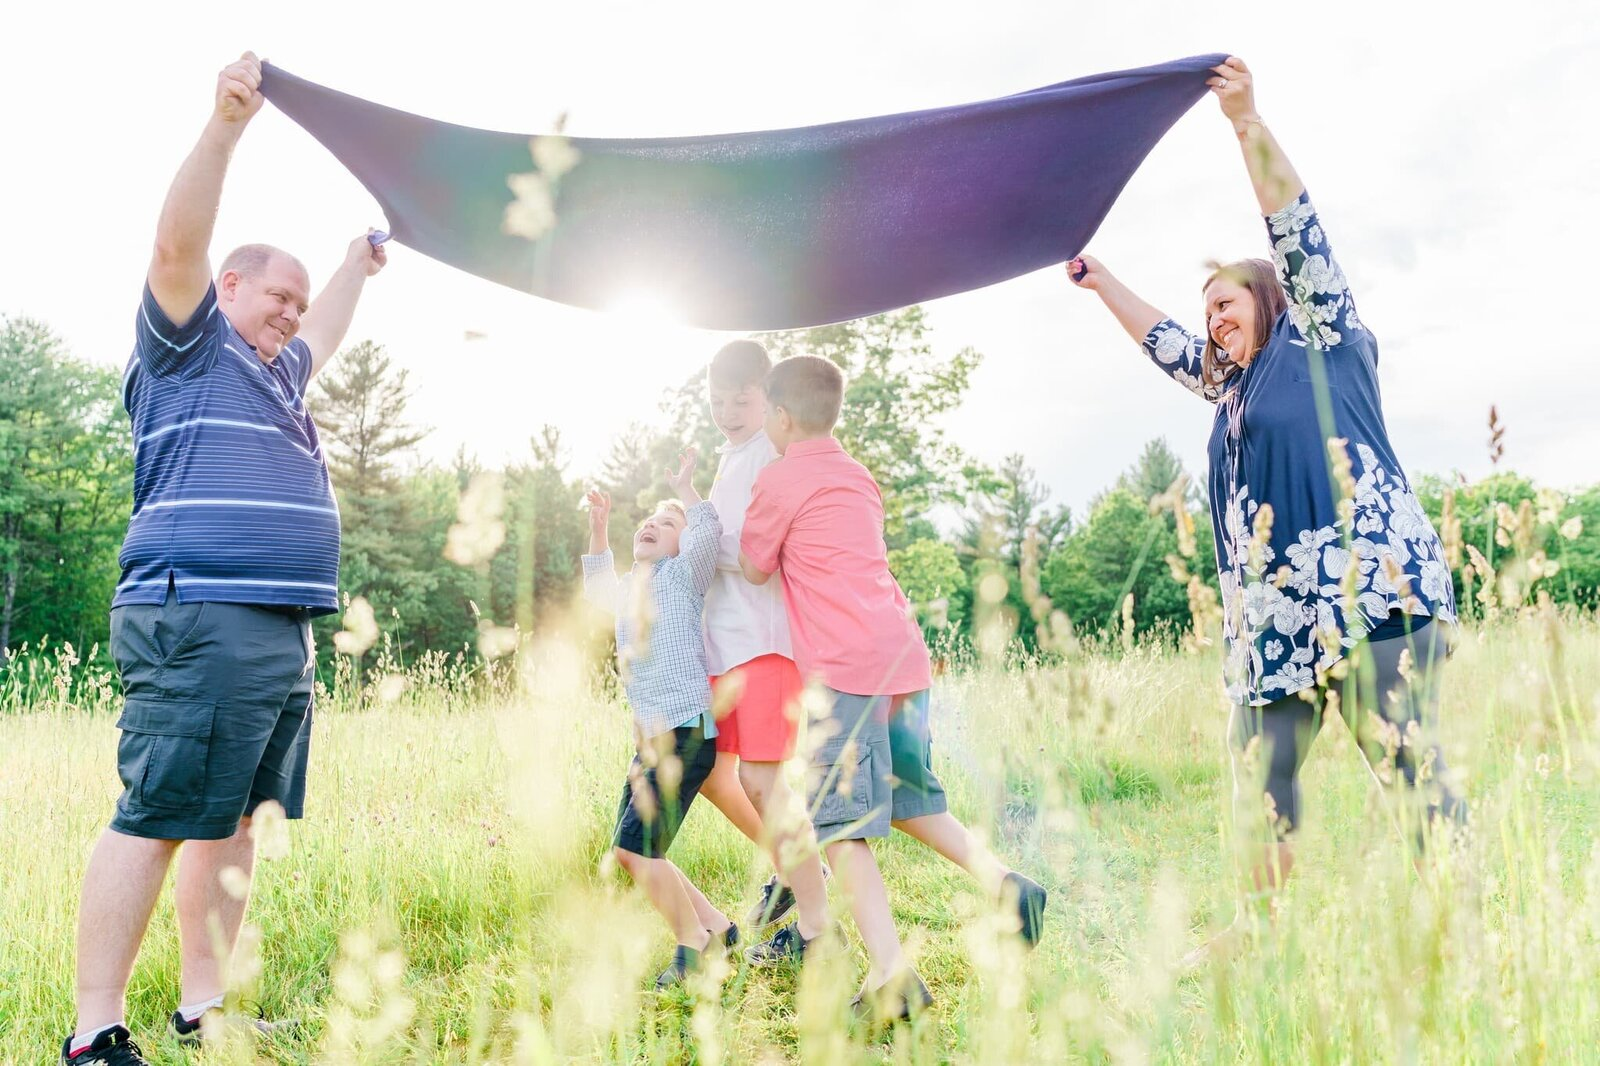 Blanket up in the air for family photos